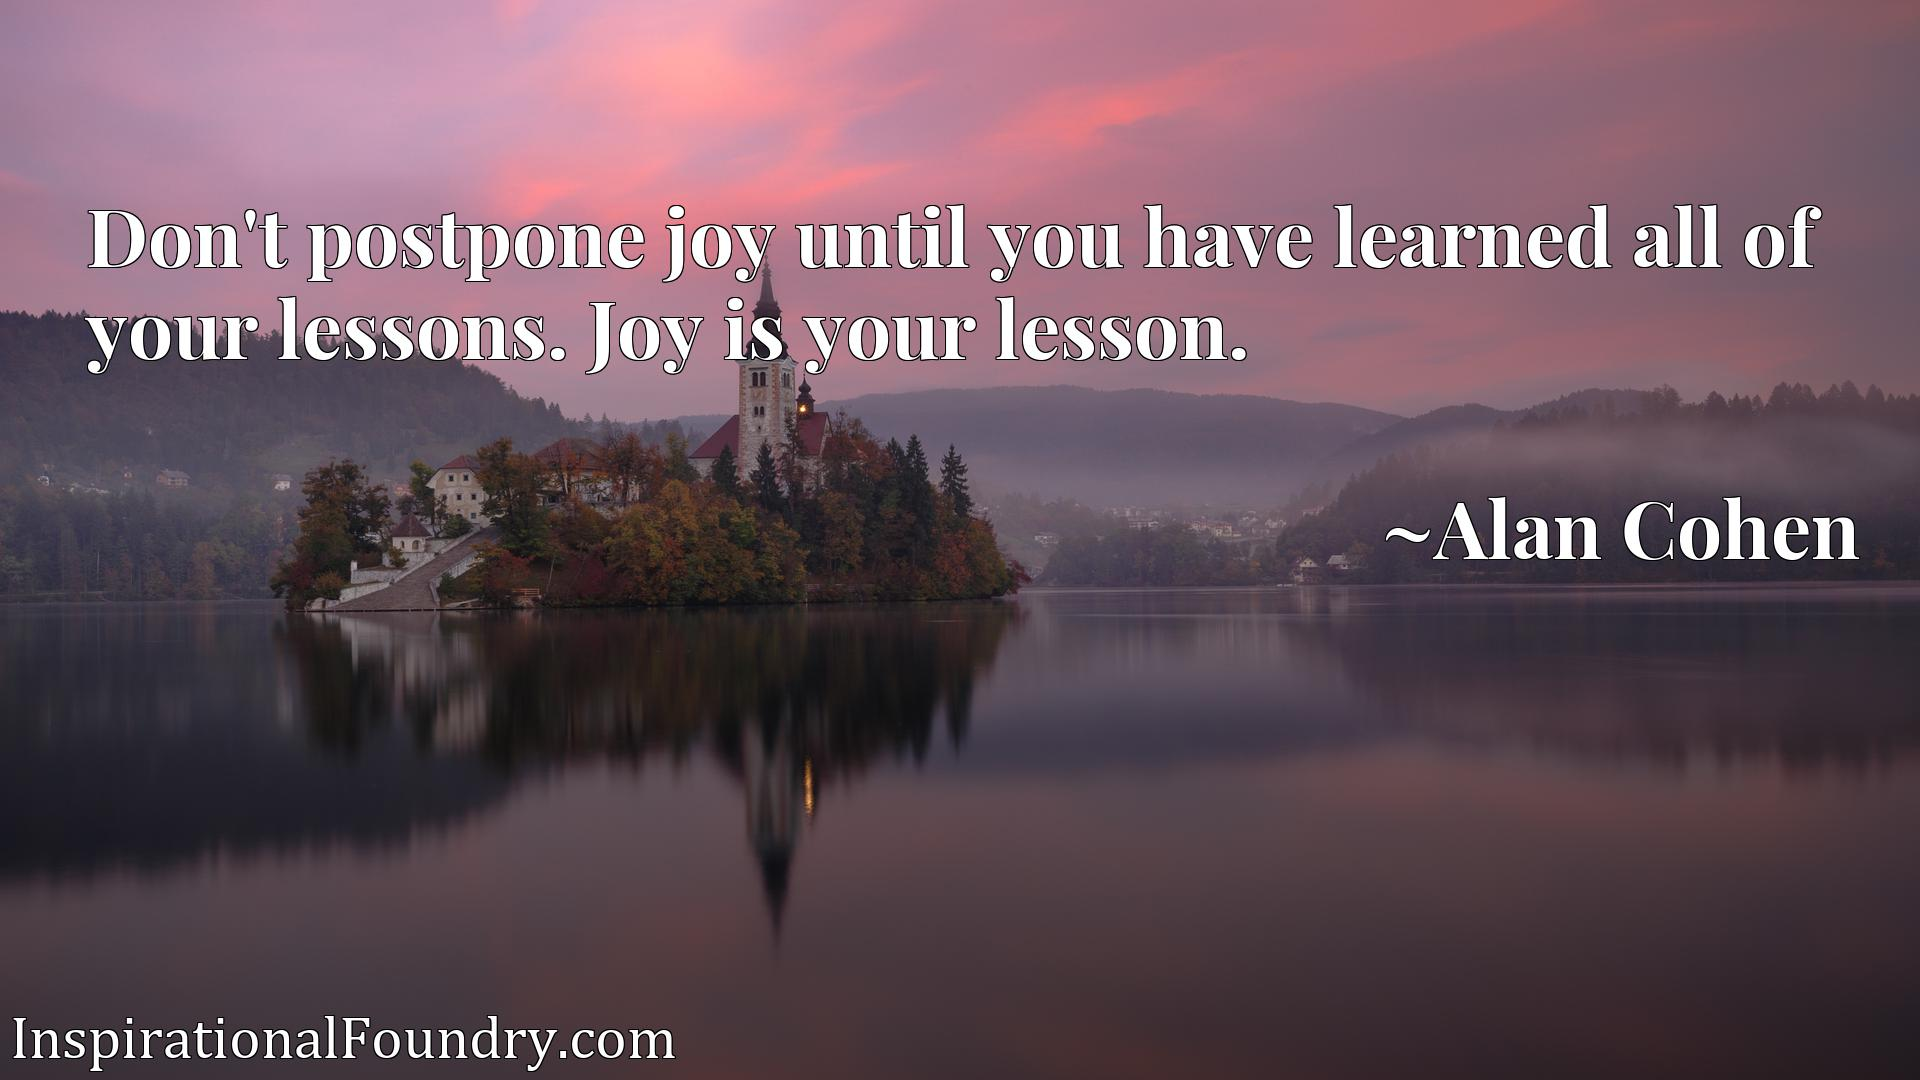 Don't postpone joy until you have learned all of your lessons. Joy is your lesson.